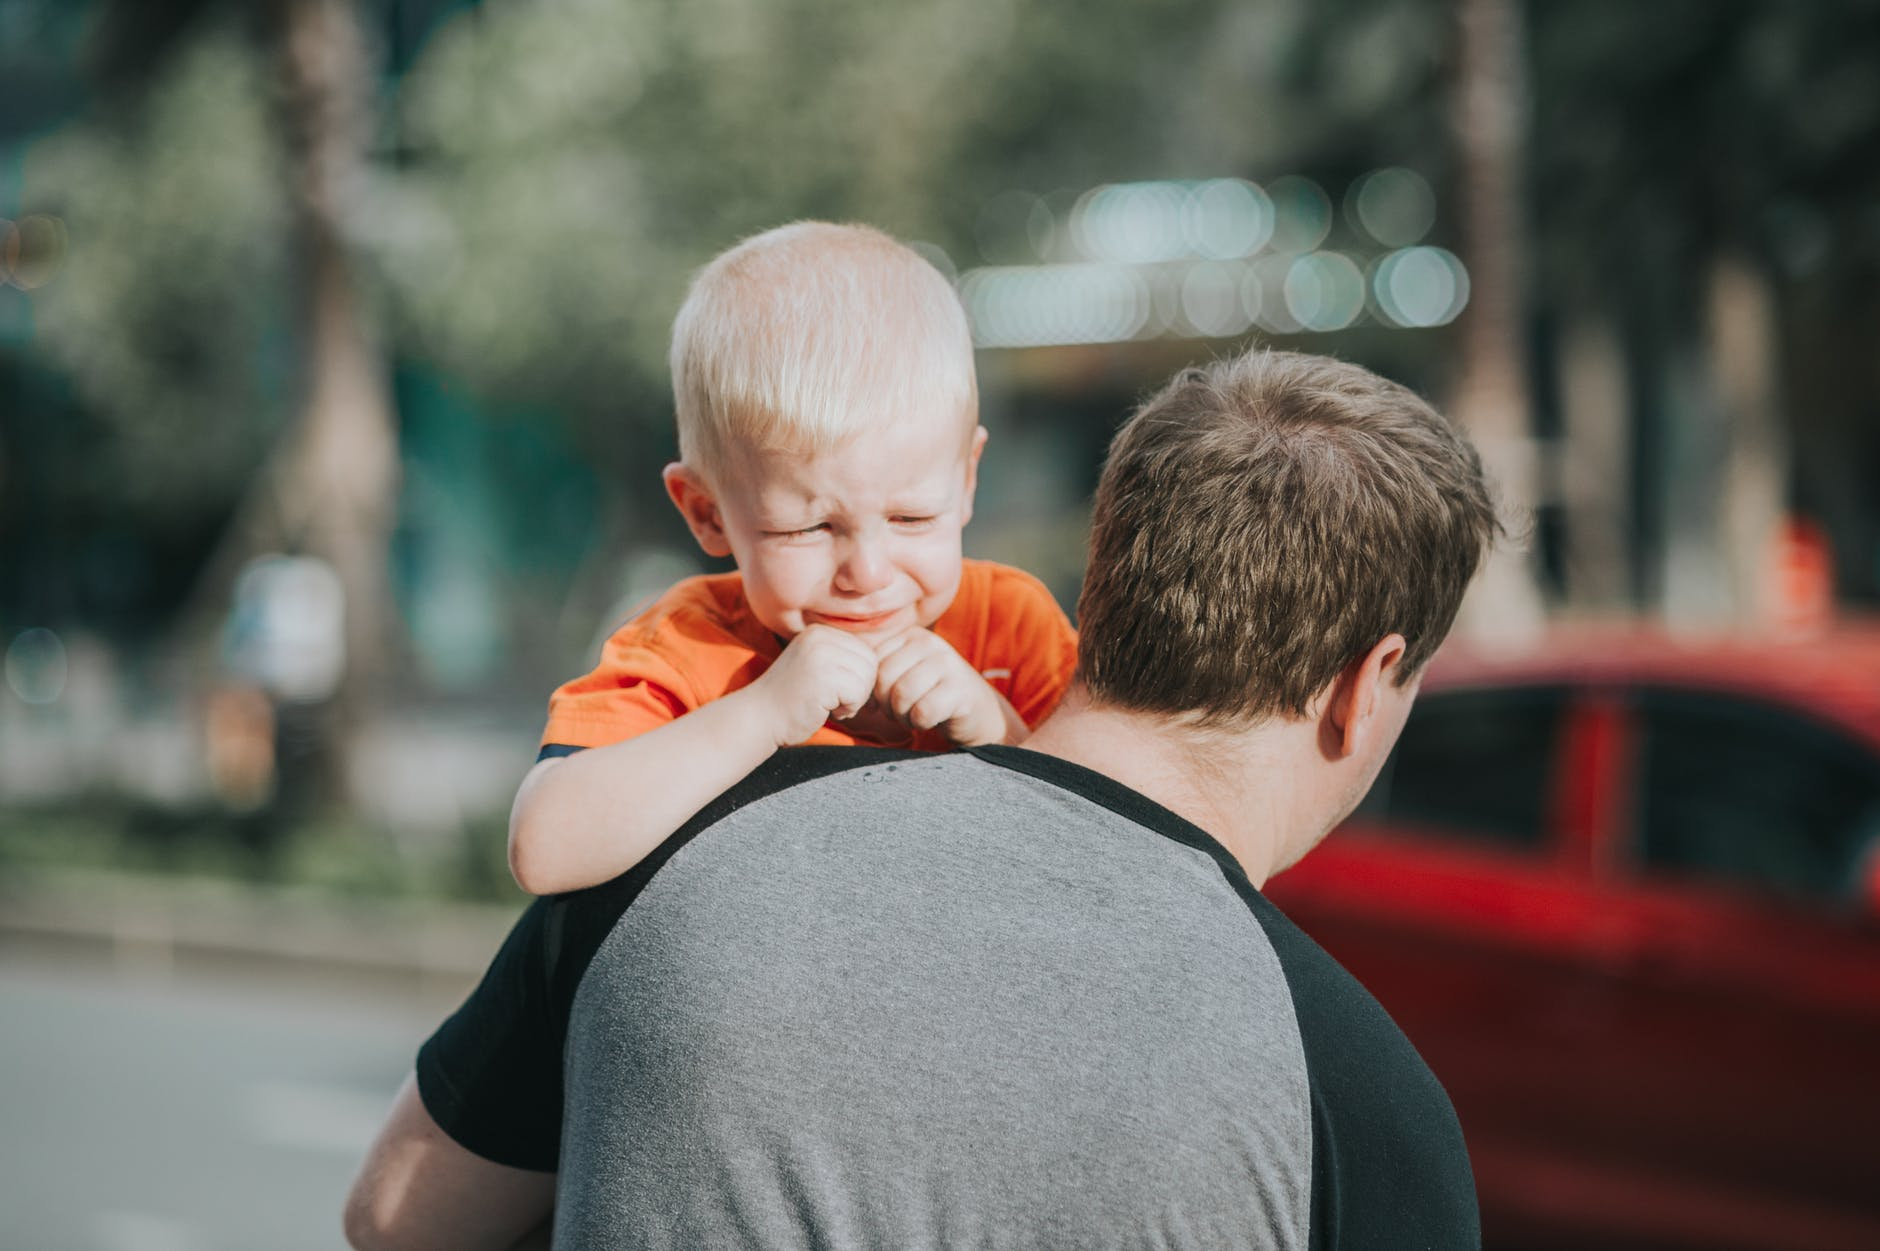 Bursting Parenting Myths: Wasn't my child supposed to listen to me? (Part 2)